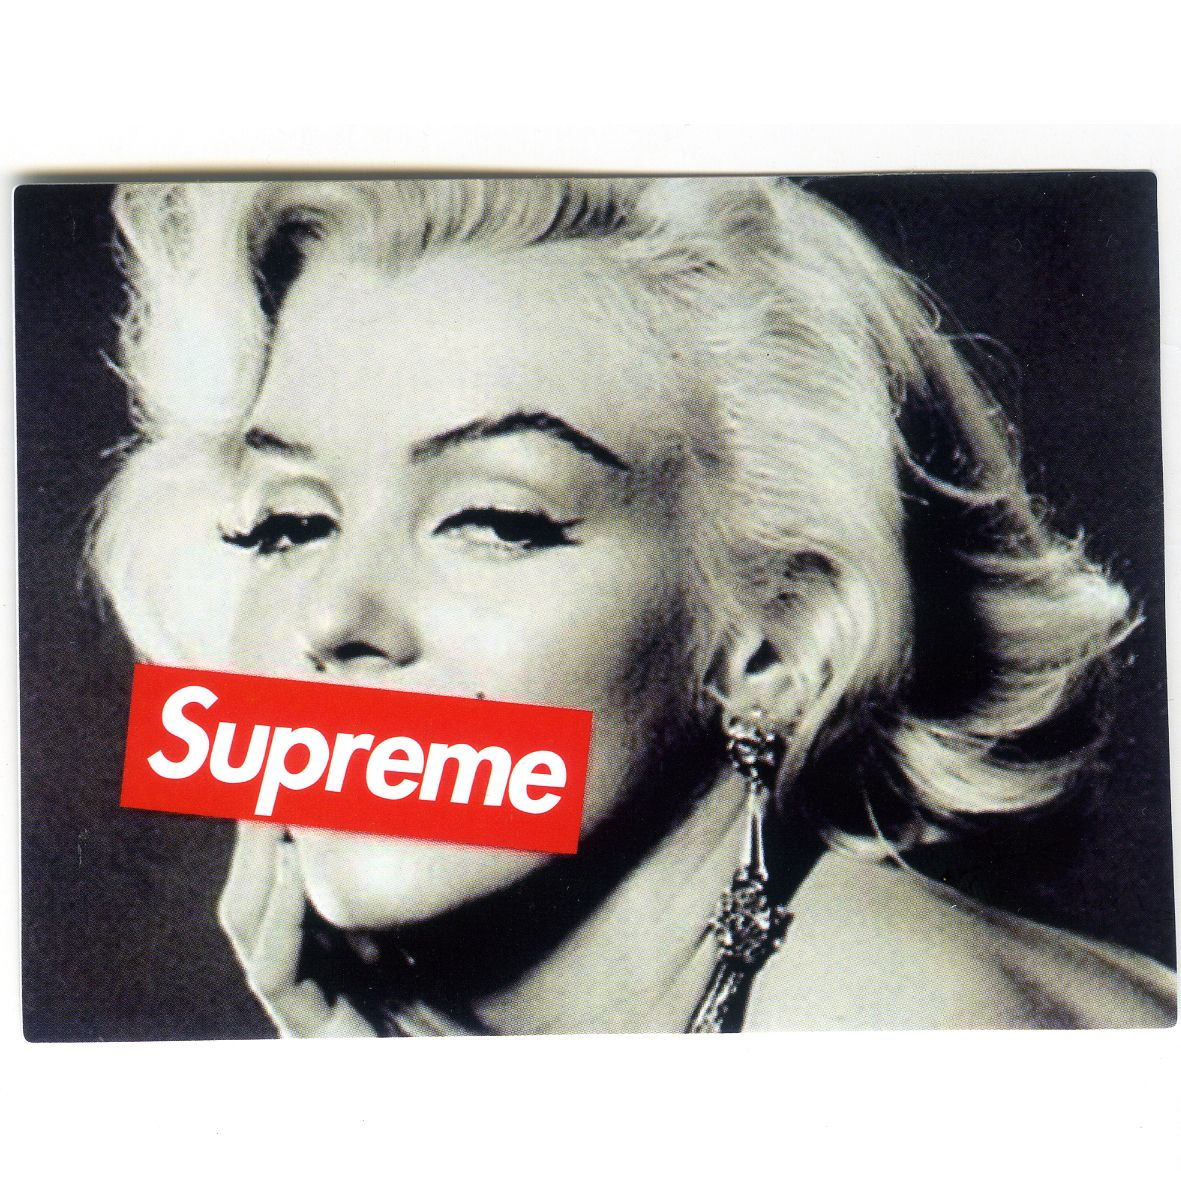 1446 Supreme Marilyn Monroe Photo , 10 cm decal sticker